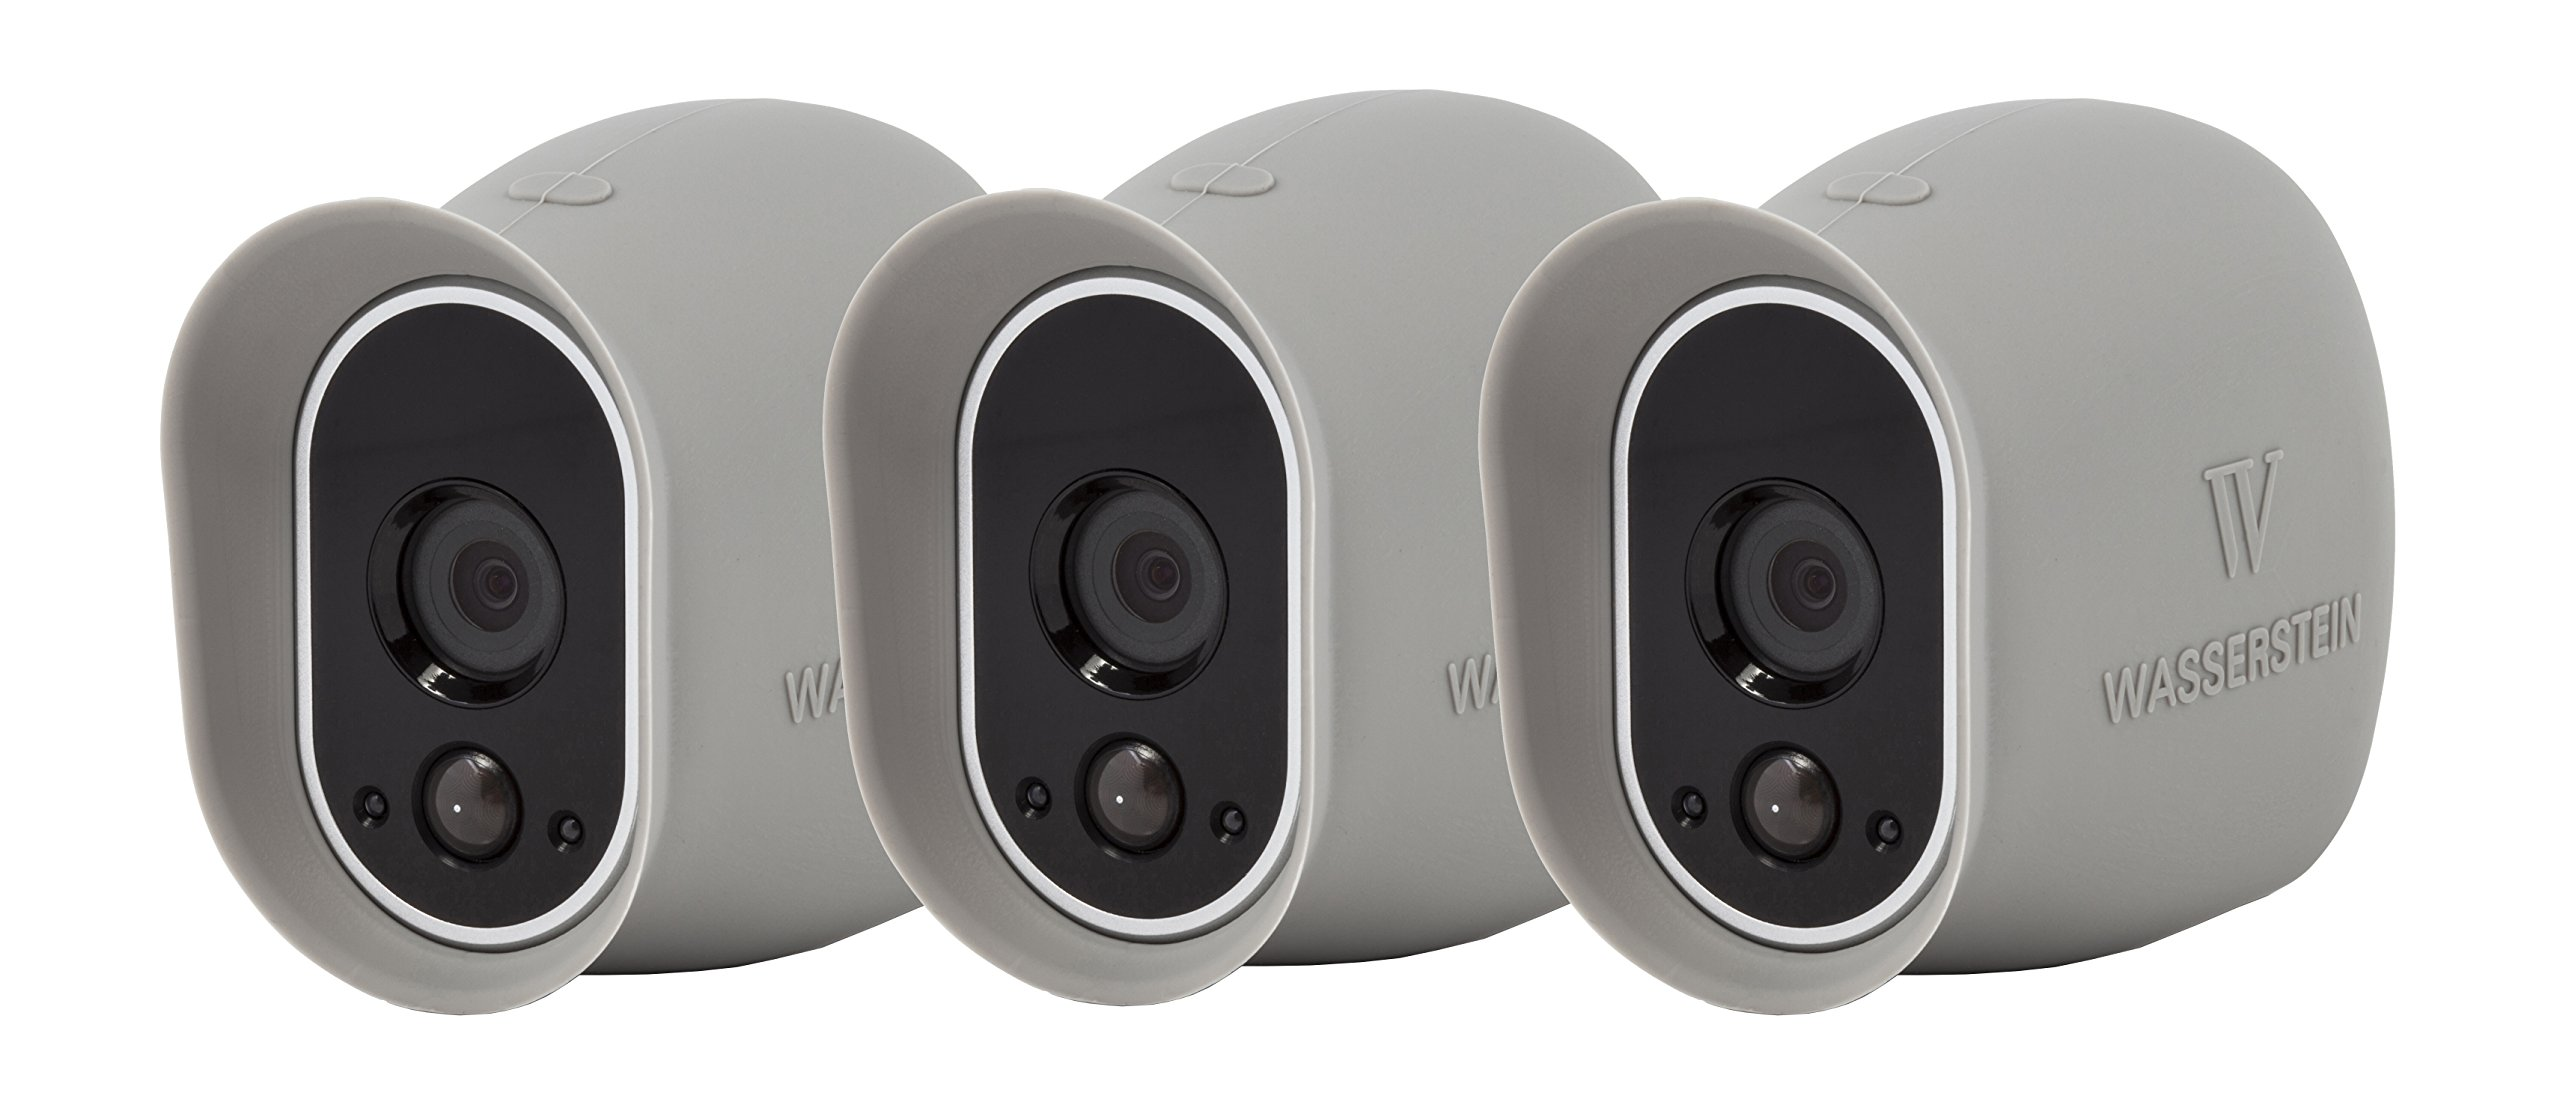 3 x Silicone Skins Compatible With Arlo Smart Security - 100% Wire-Free Cameras — by Wasserstein (Grey)